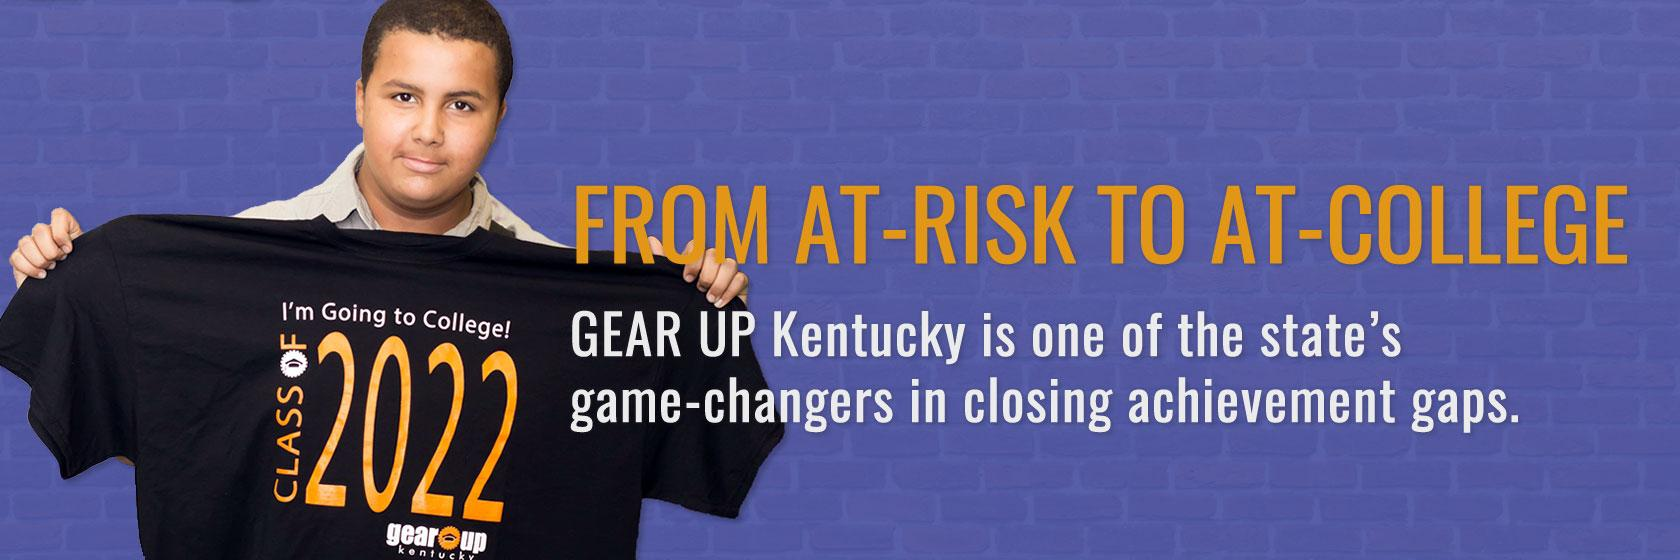 Kentucky GEAR UP program help students get the resources and mentoring they need to go to college.